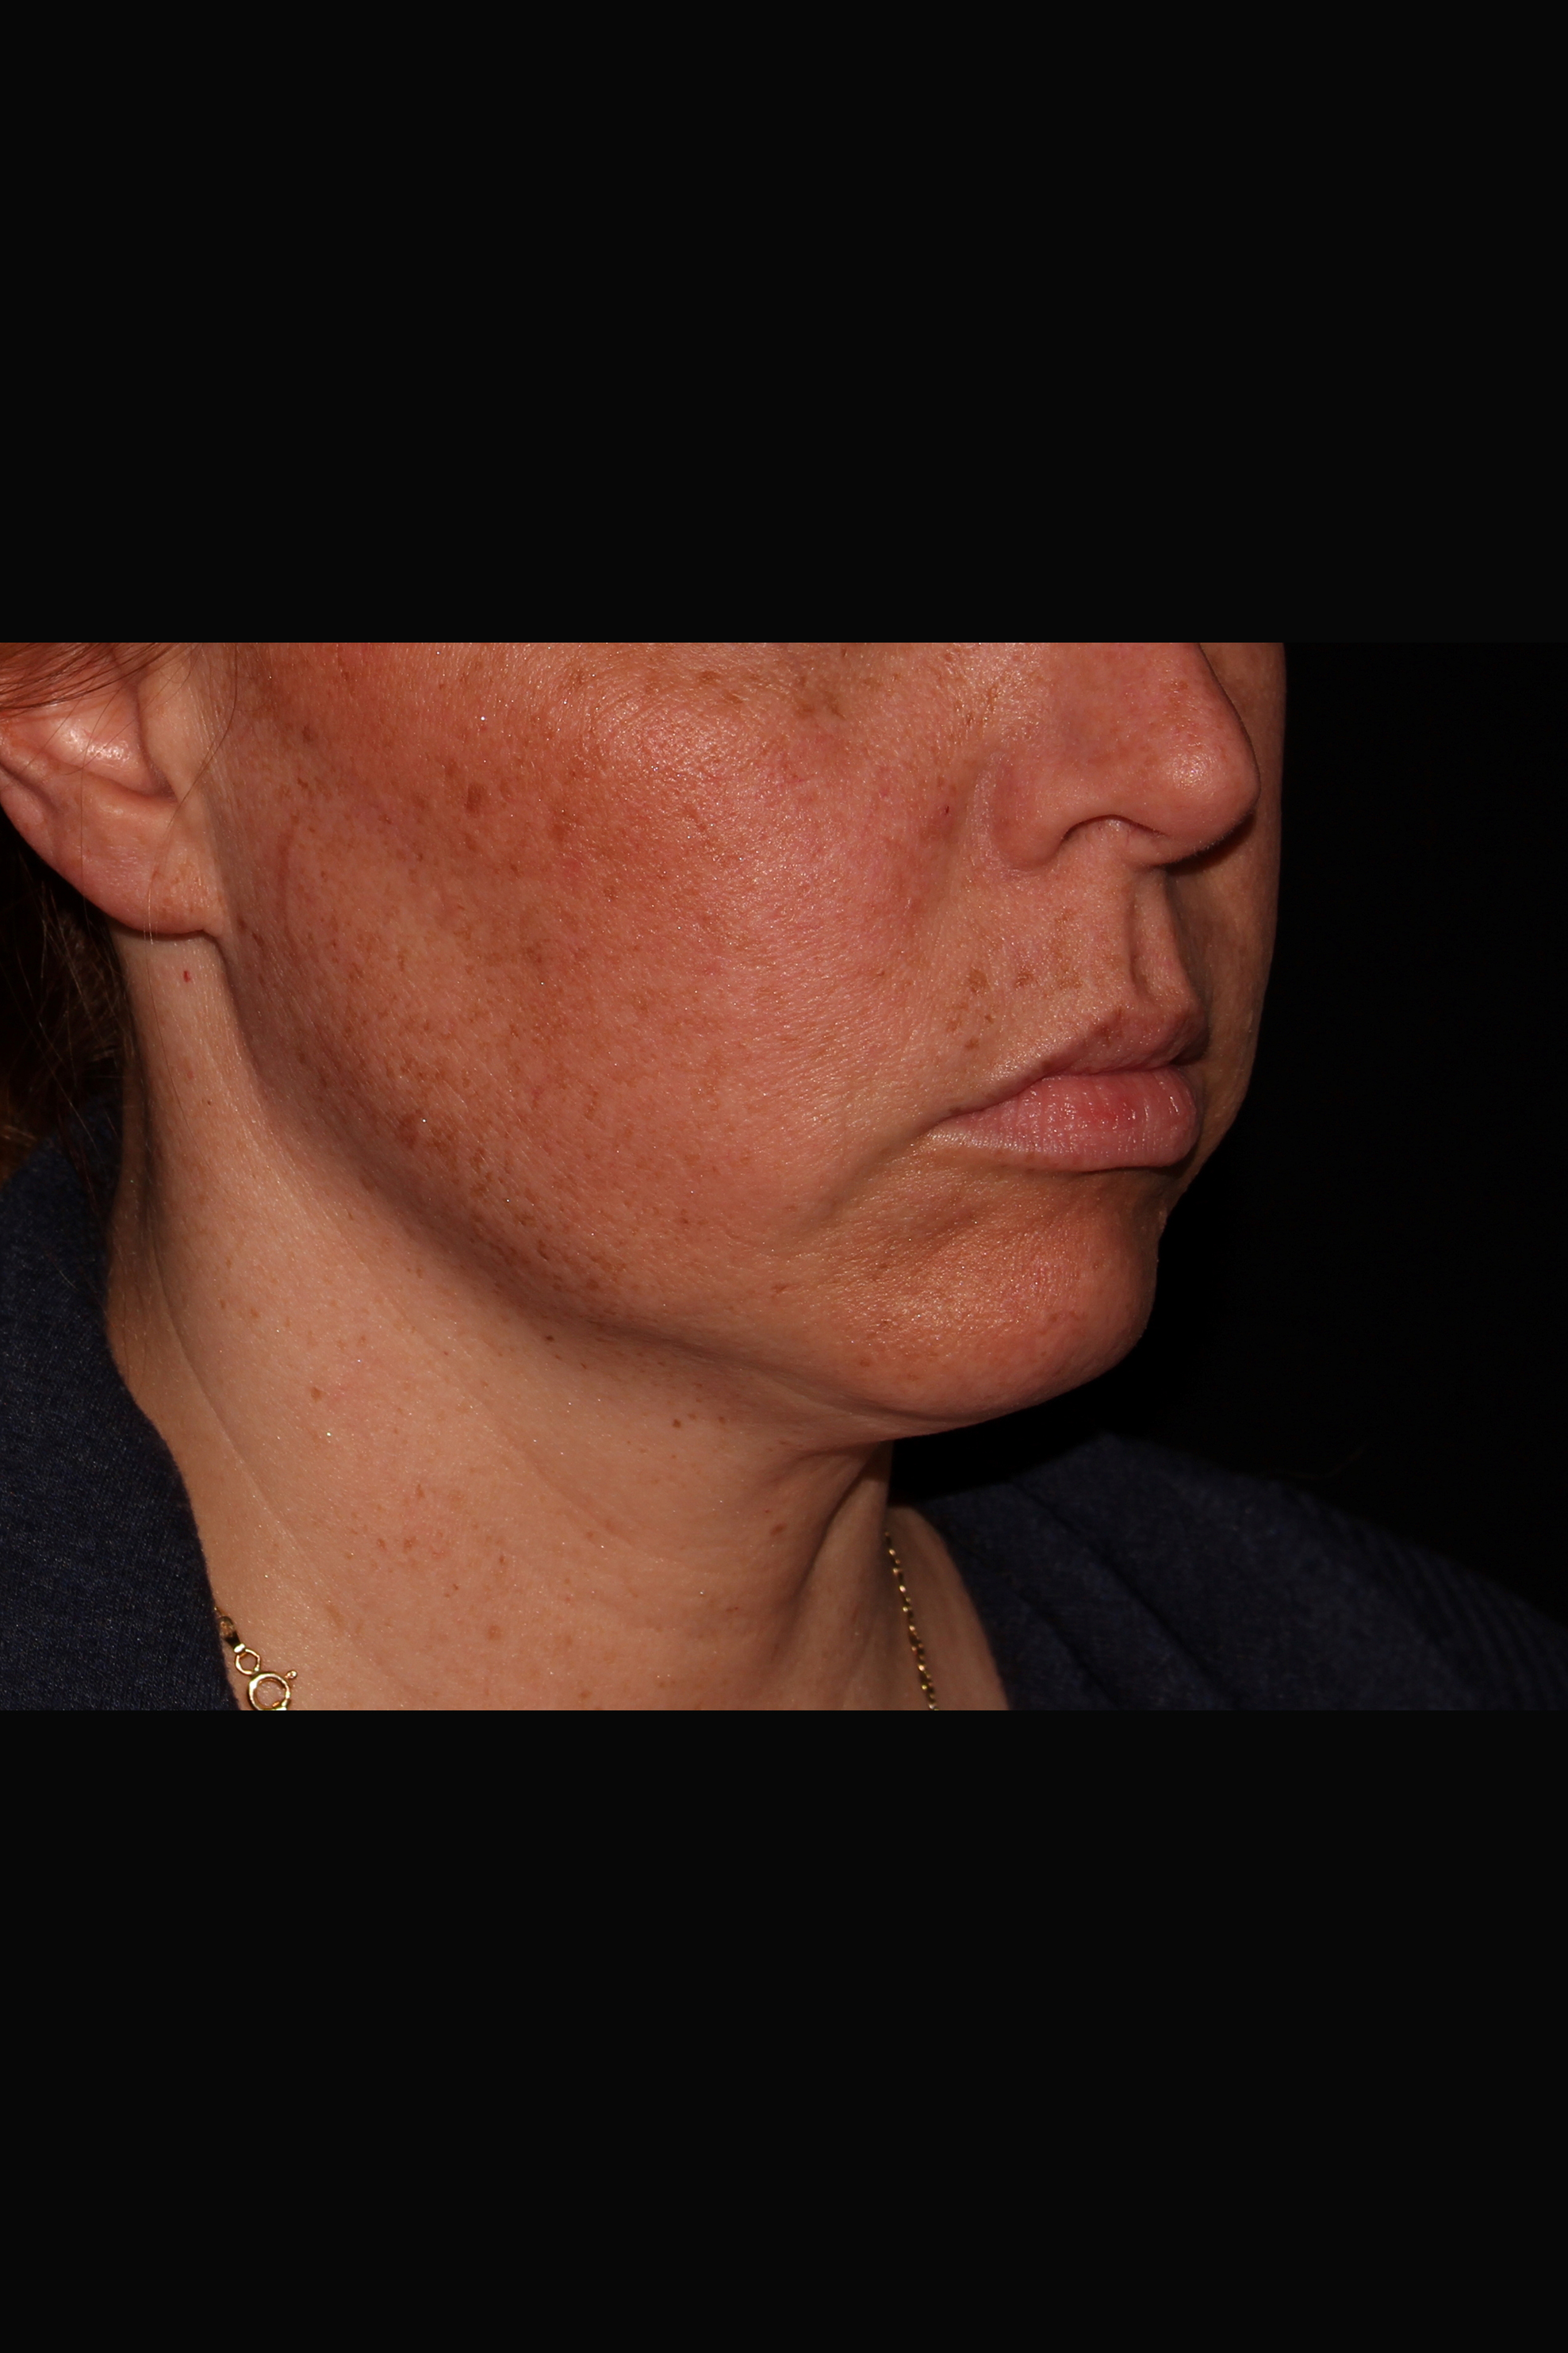 Before Magic Tight - Magic Tight to the Neck & Buccal Fat Pad Removal